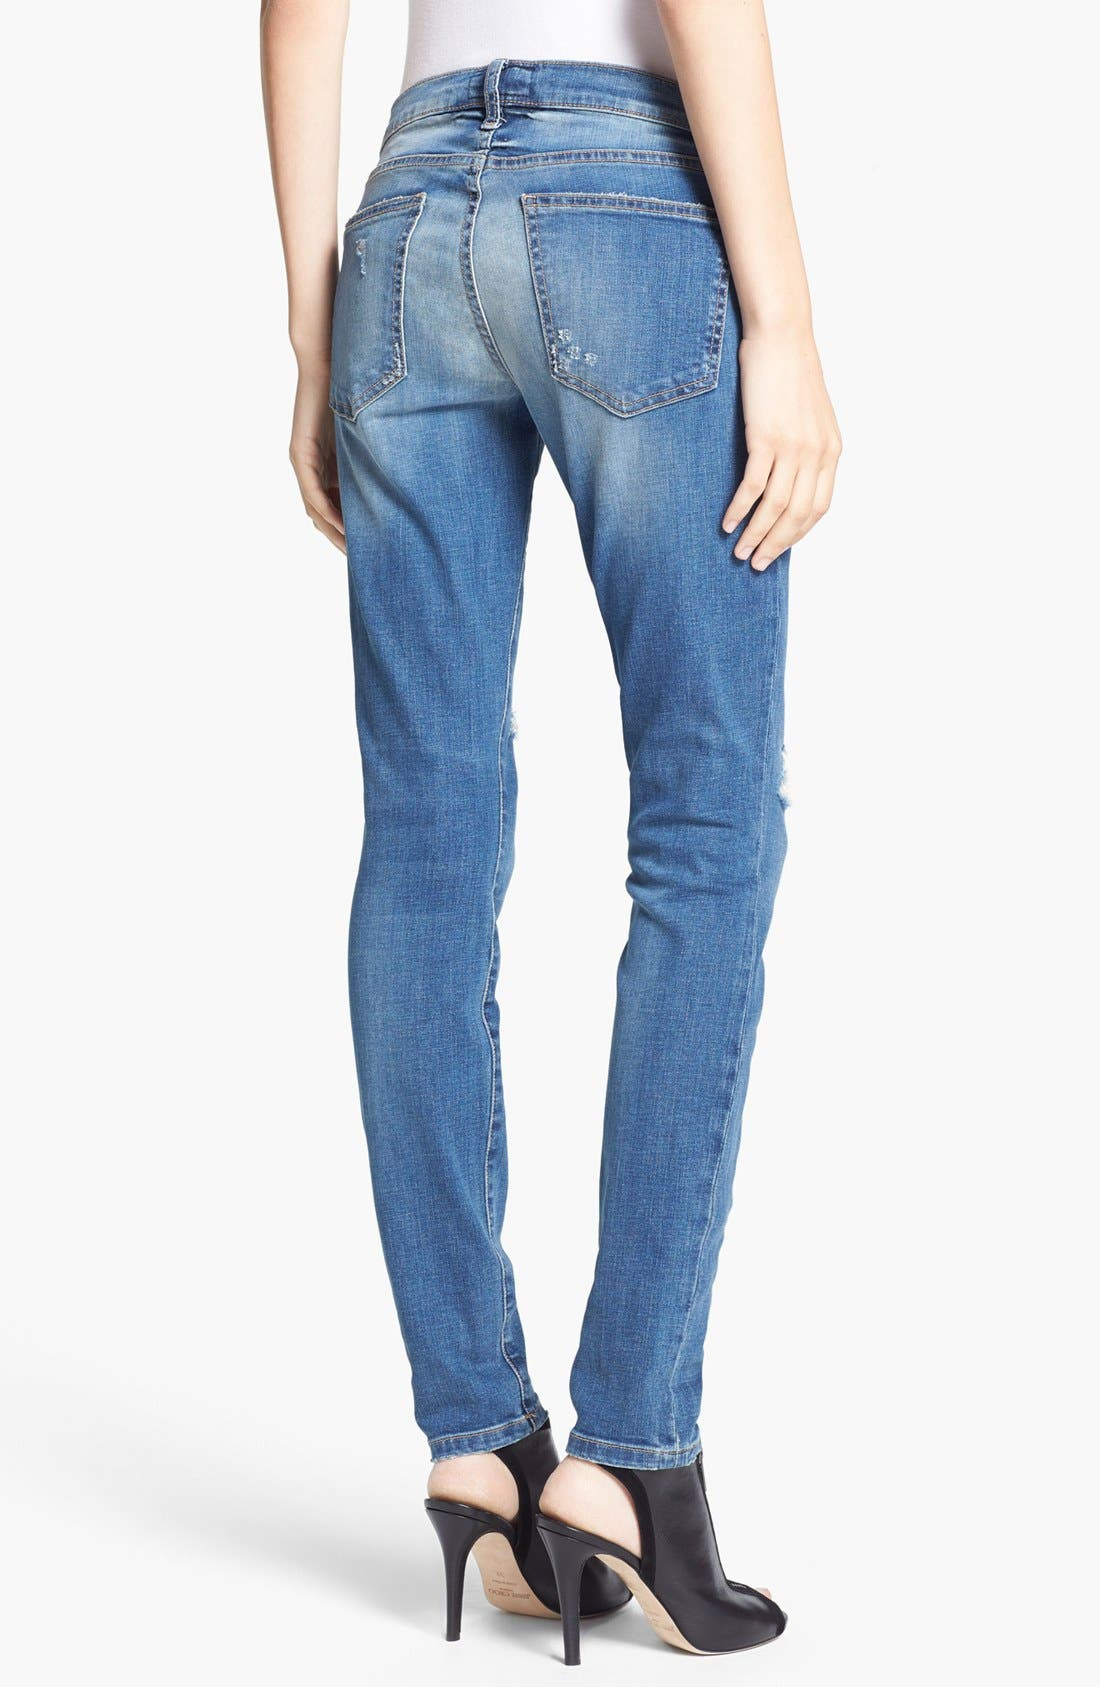 Alternate Image 2  - Current/Elliott 'The Ankle Skinny' Jeans (Borough Destroy)